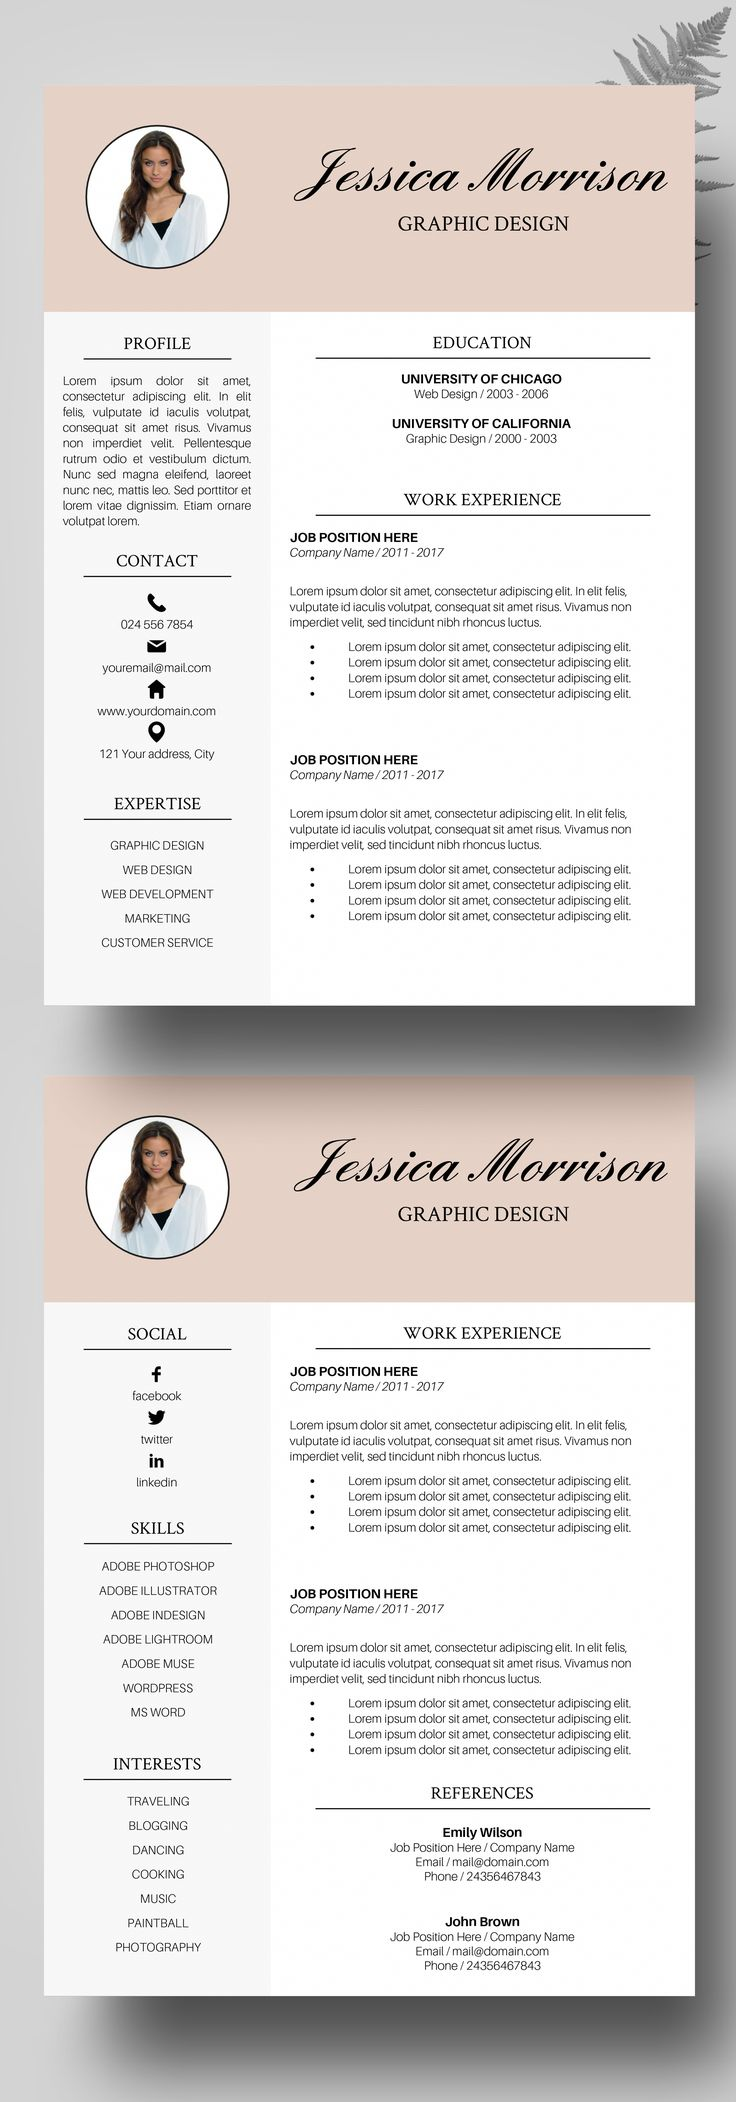 free resume templates creative bloq with astounding creative resume templates free download